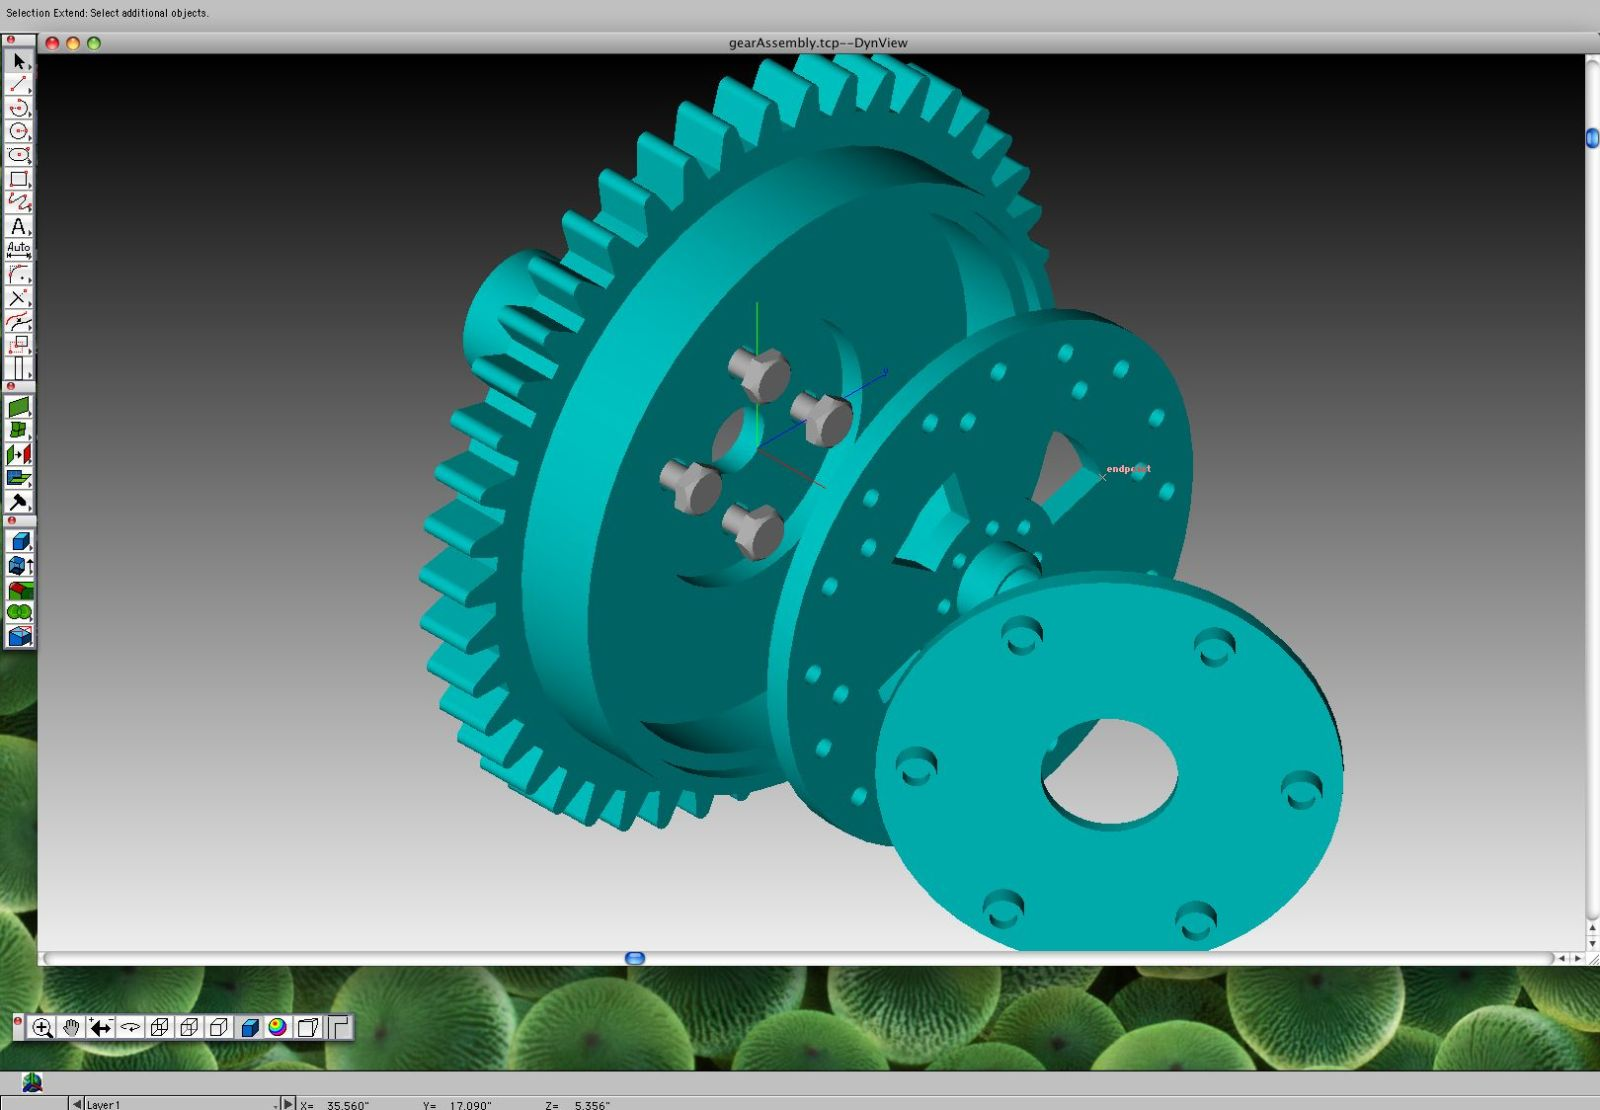 ... of Turbo CAD: Turbo CAD Mac Deluxe v5 | Best Software 4 Download blog: blog.bestsoftware4download.com/2010/04/new-version-of-turbo-cad...